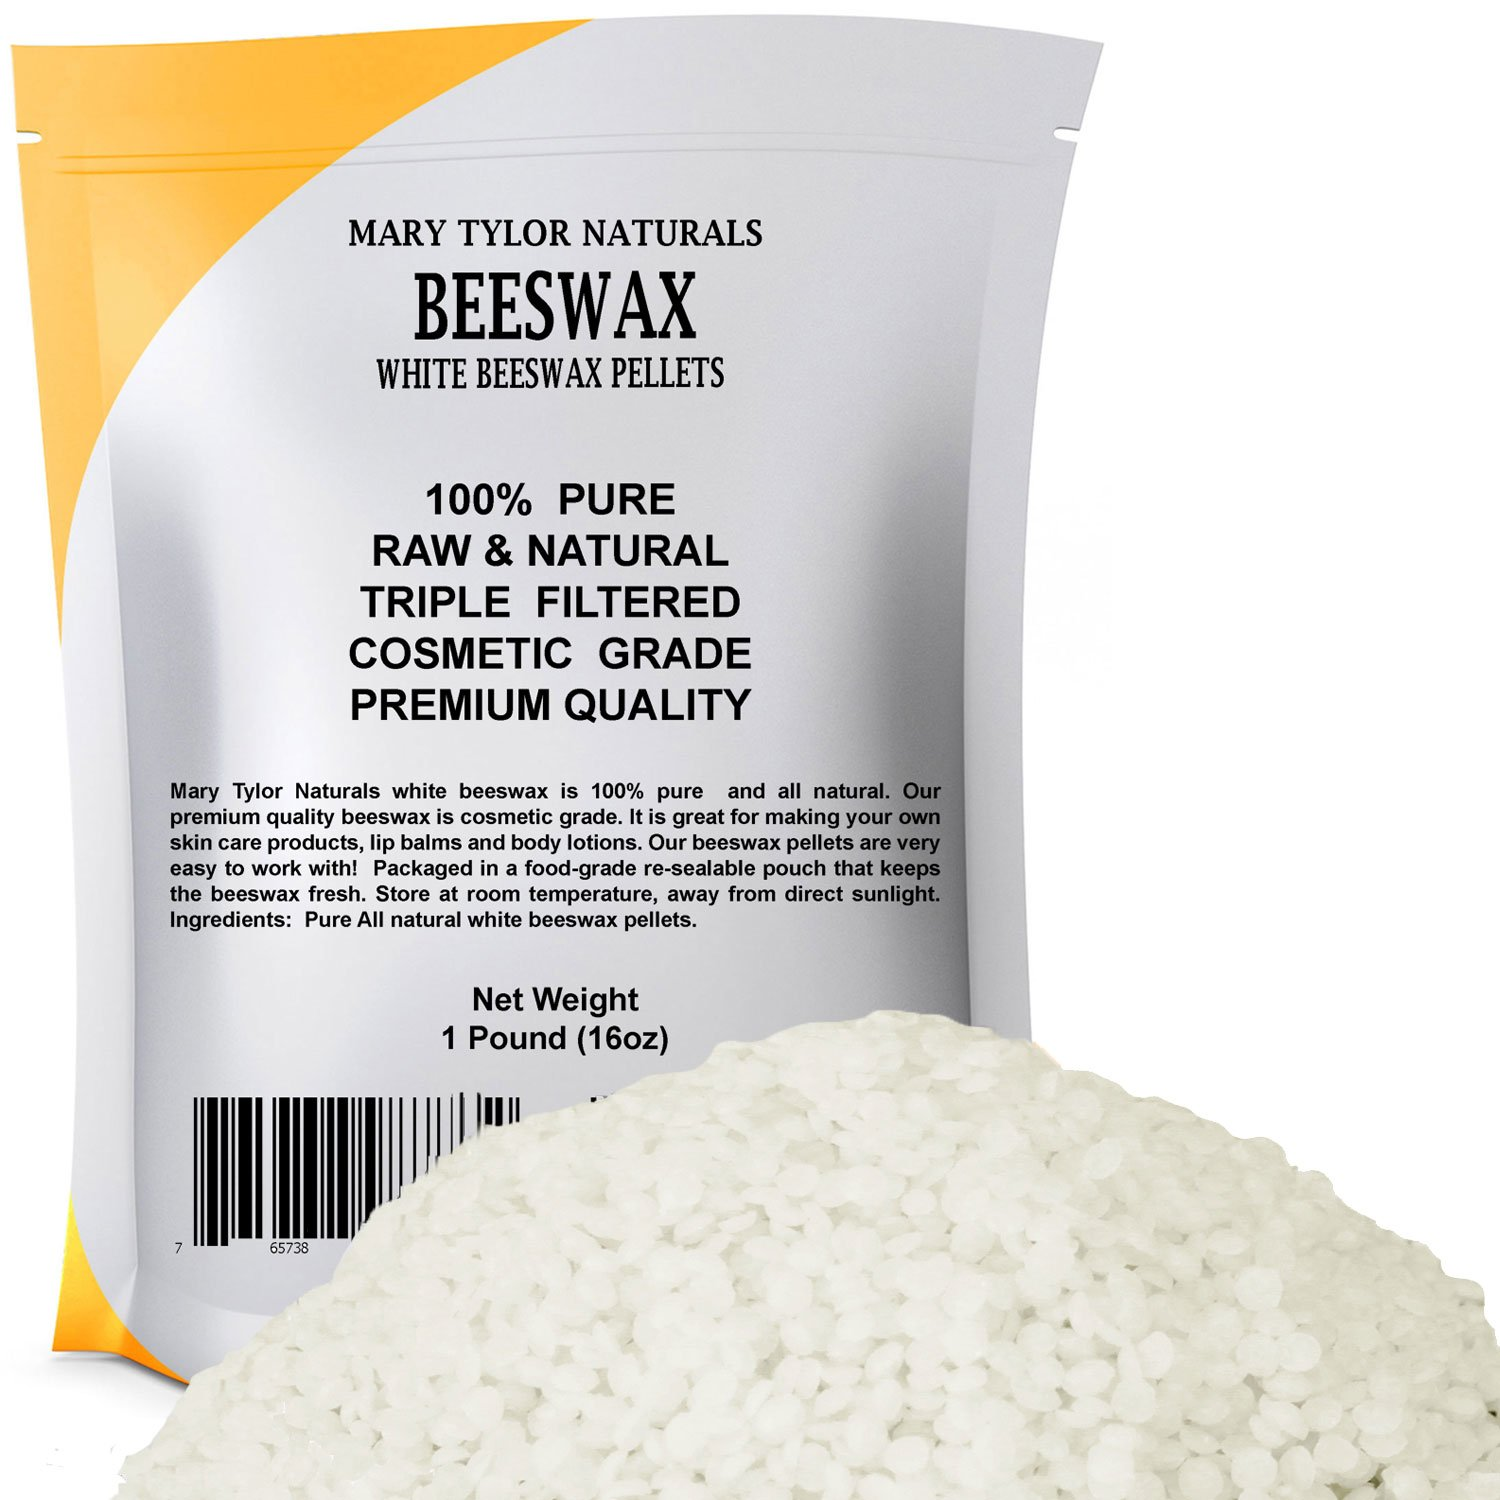 White Beeswax Pellets 1lb (16 oz) by Mary Tylor Naturals, Premium Quality, Cosmetic Grade, Triple Filtered Bees Wax Pastilles Great for DIY Lip Balm Recipes Body Creams Lotions Deodorants